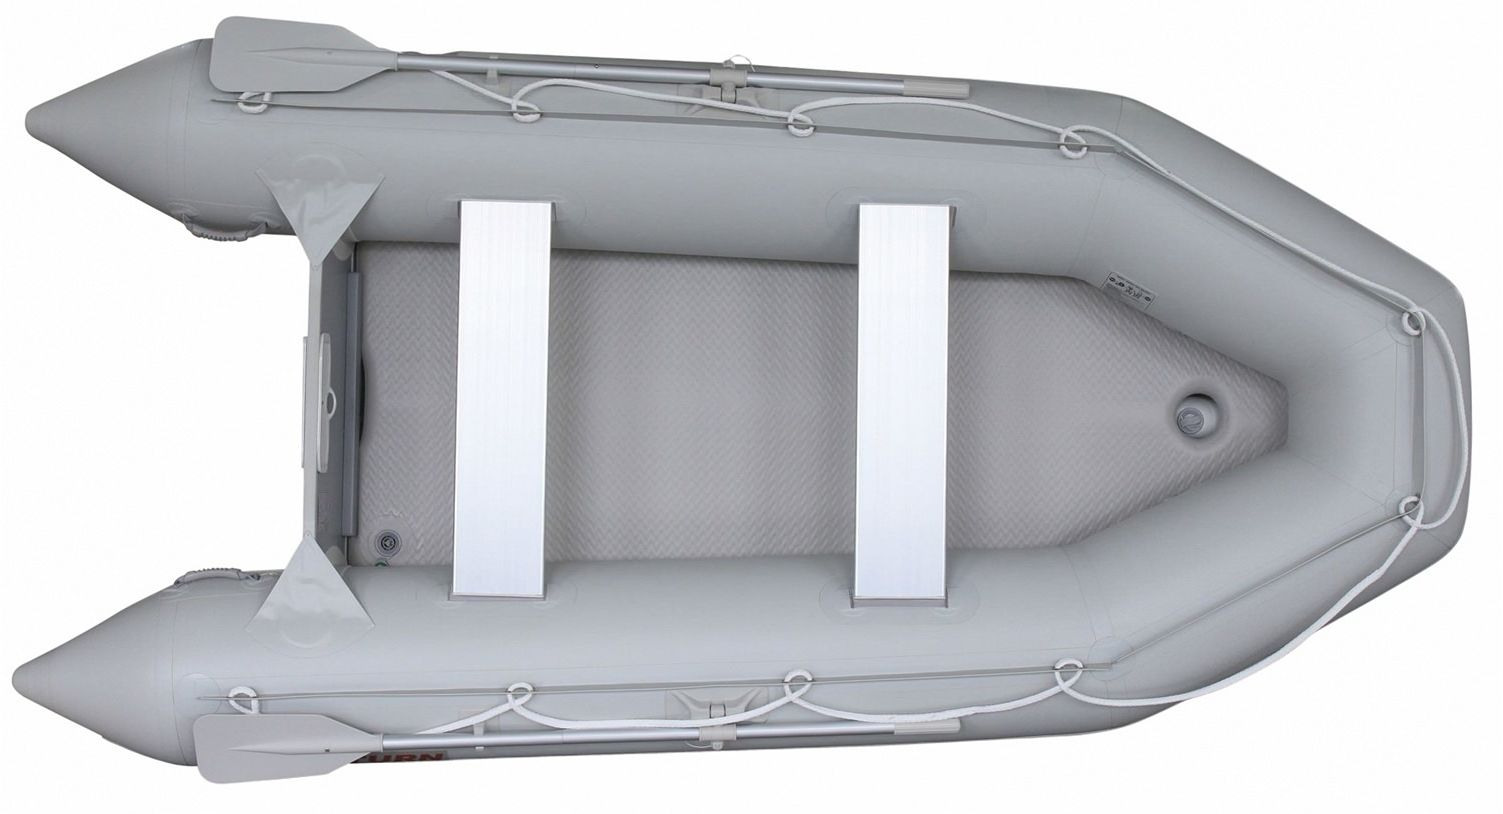 11' Saturn Inflatable Boat SD330 - Top View